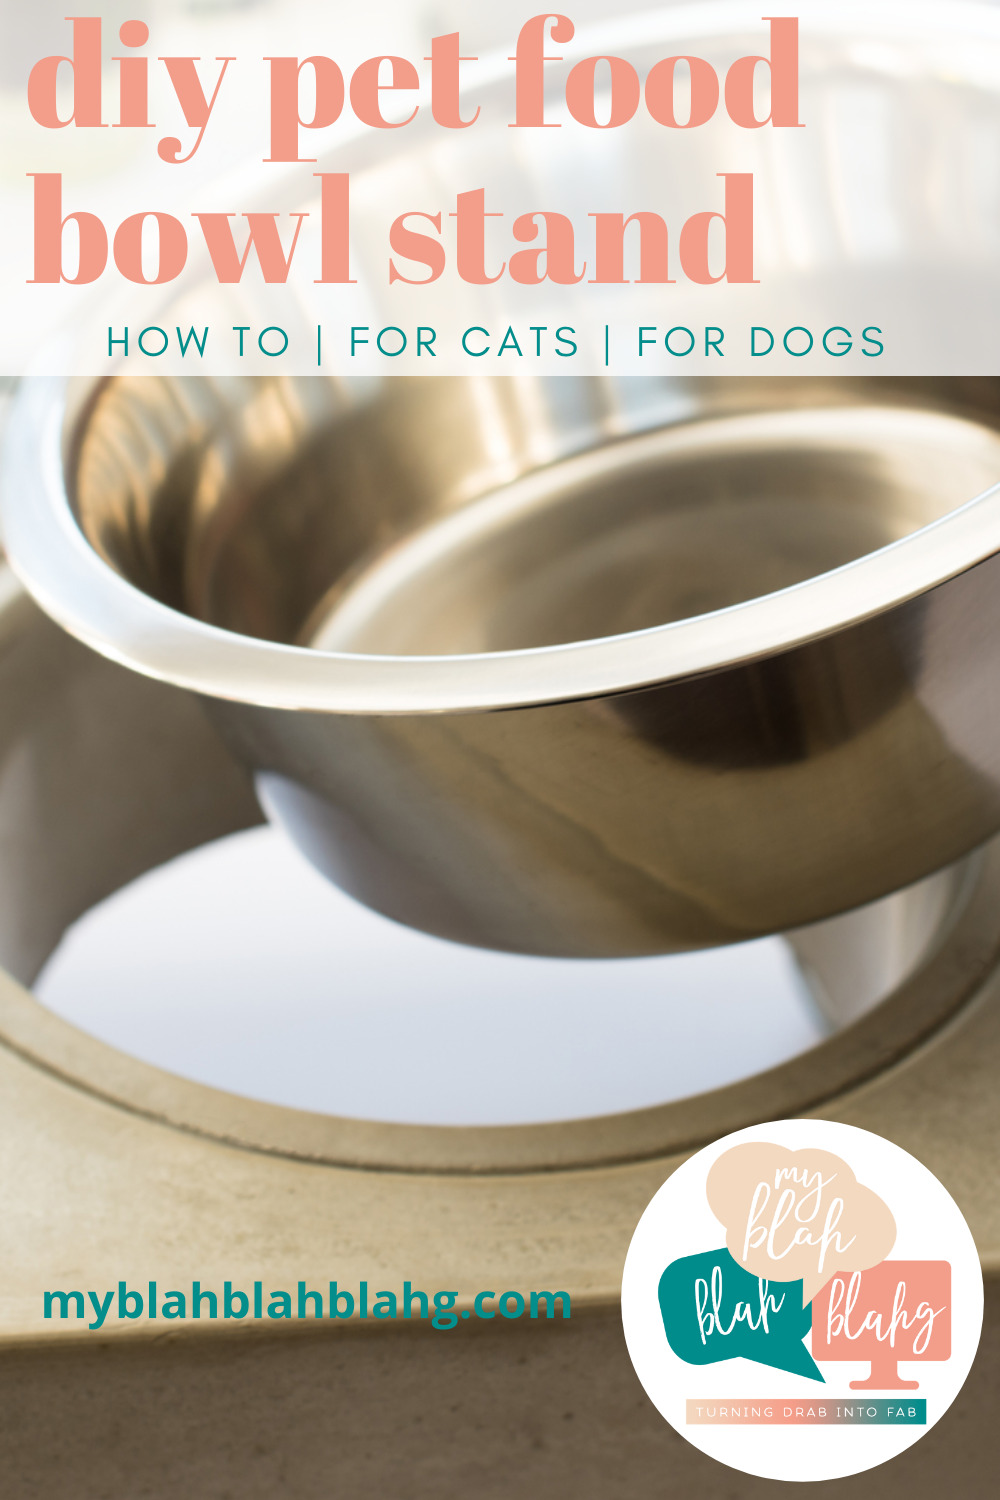 Make simple pet food bowls look a little more chic with one of the DIY pet food bowl stands below. These pet food bowls are super easy to make and you'll love how they look. #diy #home #myblahblahblahgblog